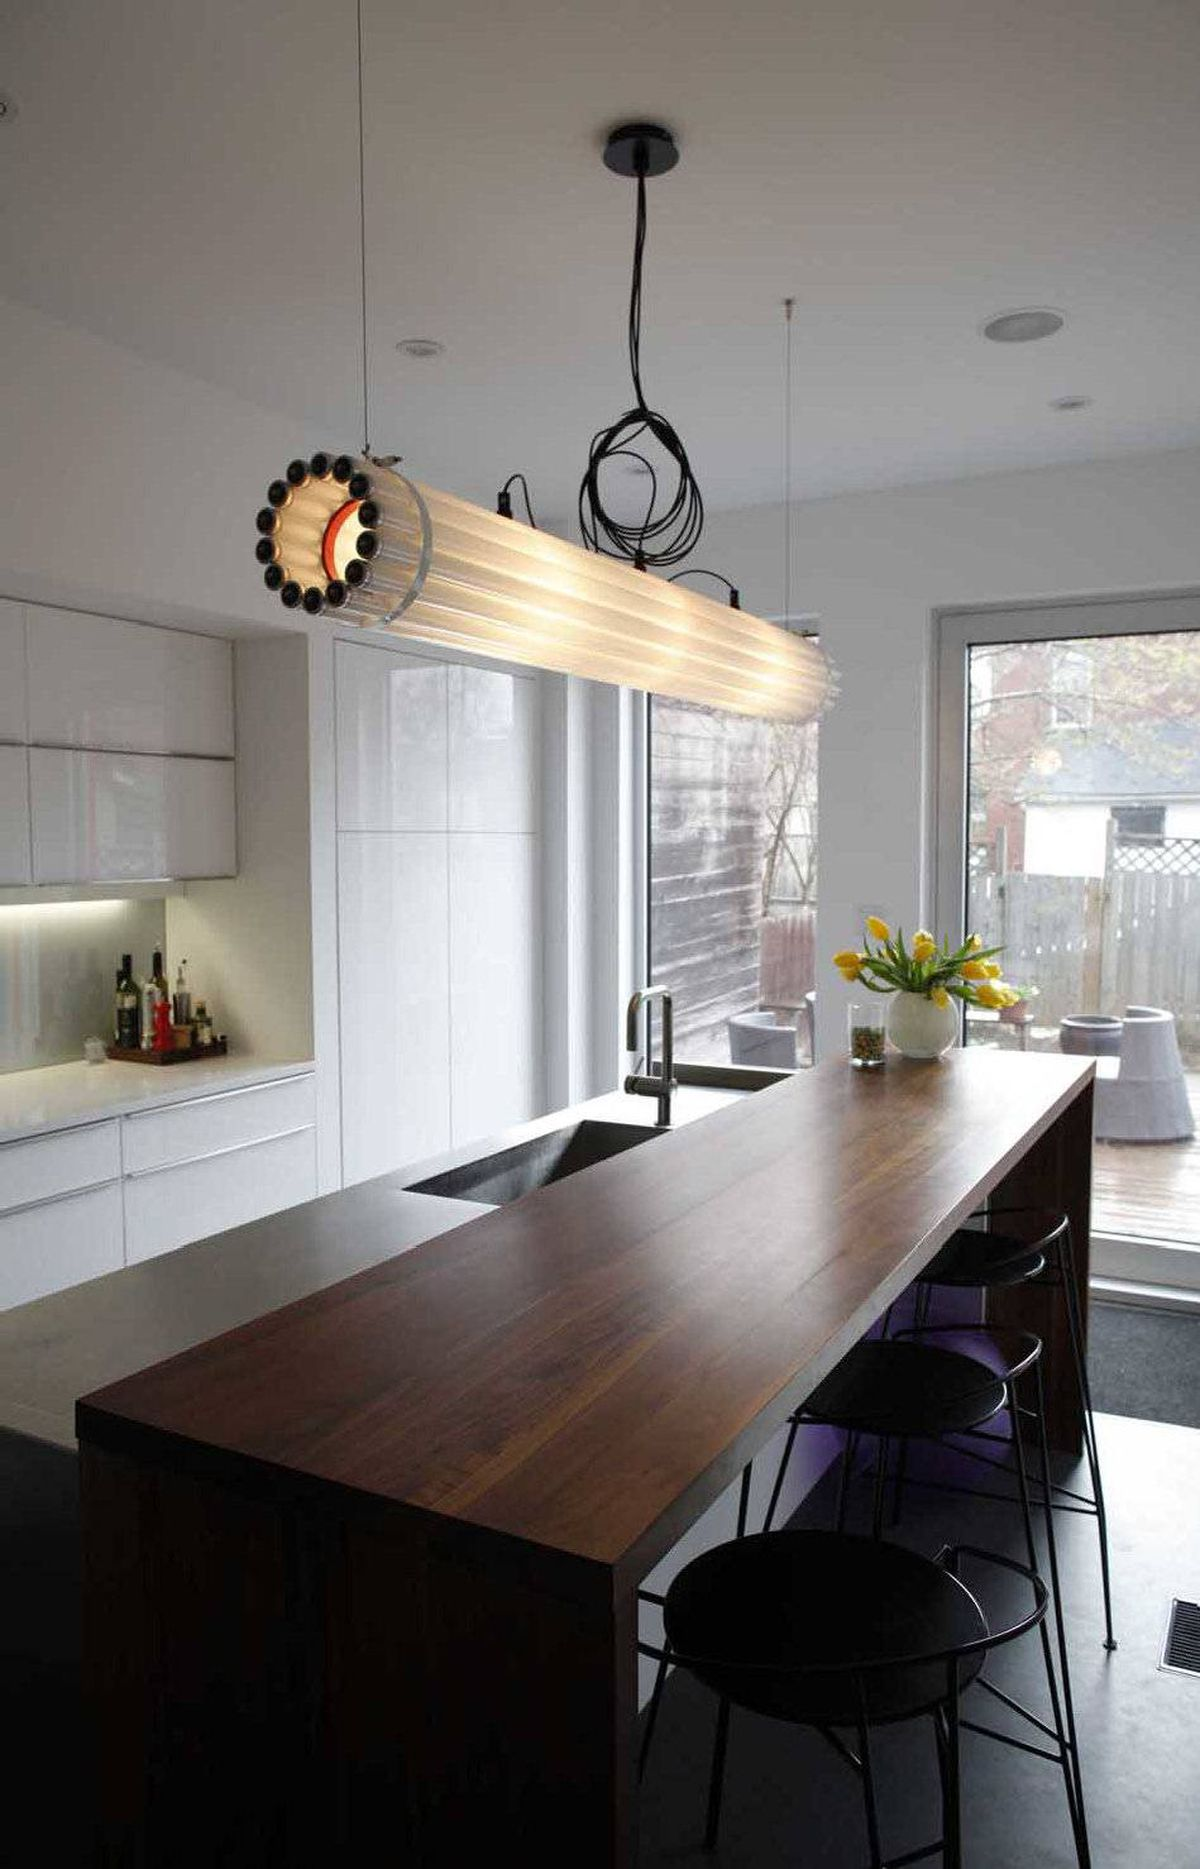 Matthew Carmichael's 11-by-17-foot kitchen was designed with two principal goals in mind: maximum functionality and tranquillity.